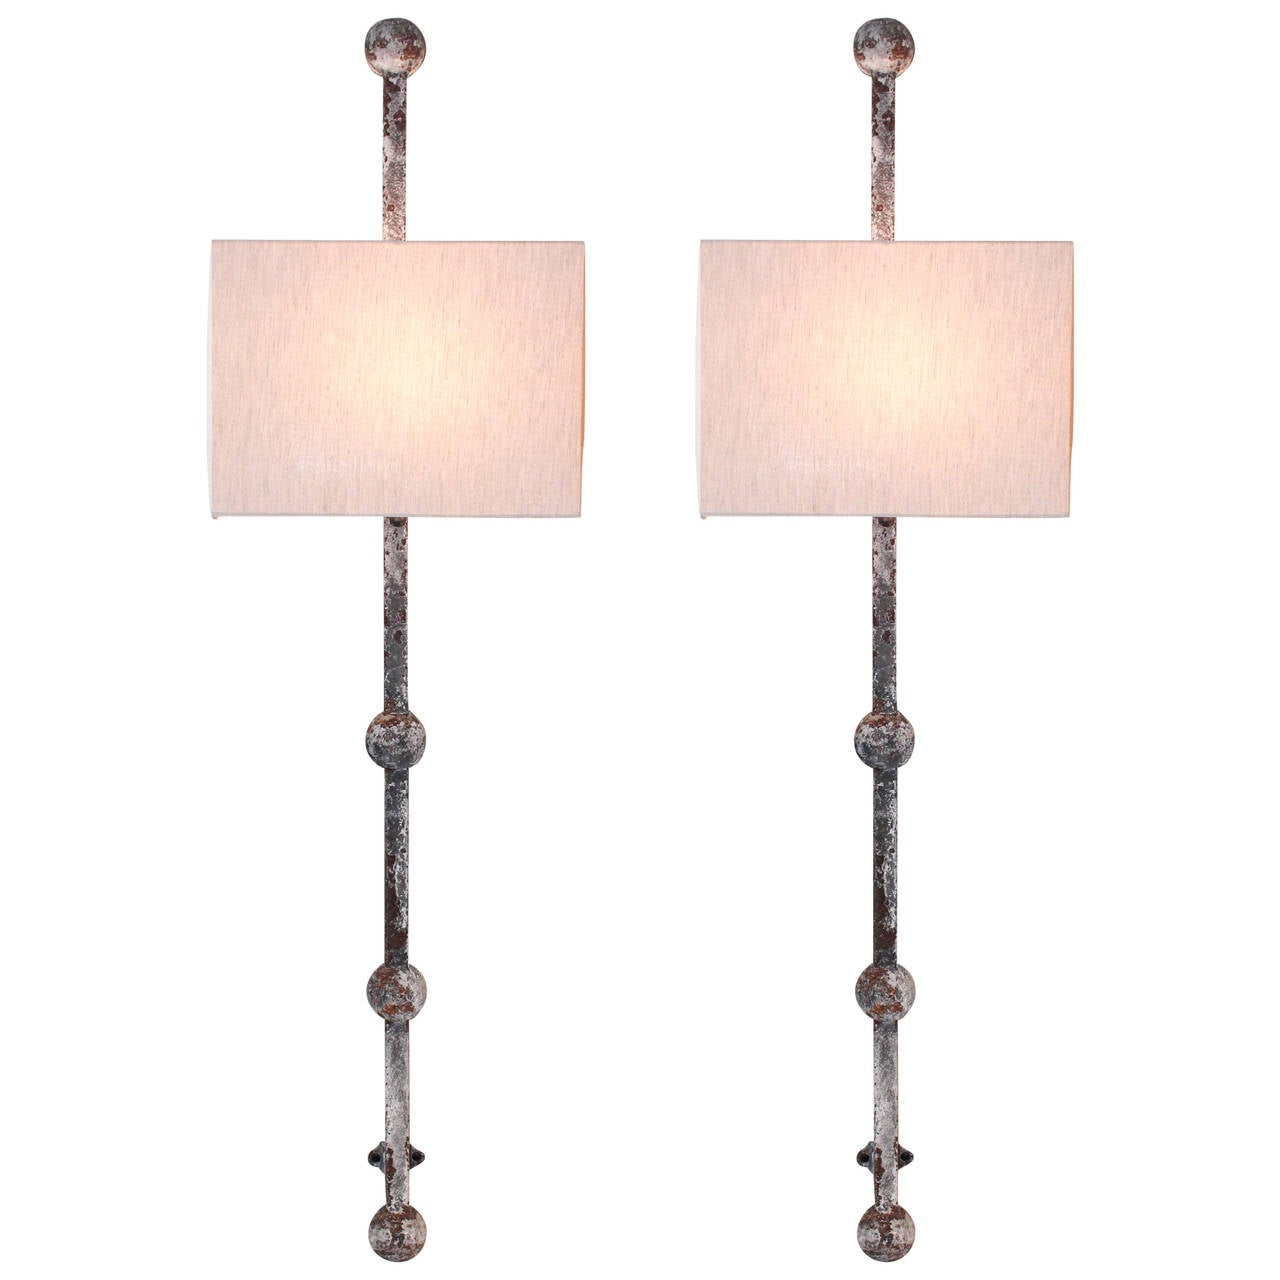 Metal Wall Sconces pair of tall iron wall sconces for sale at 1stdibs